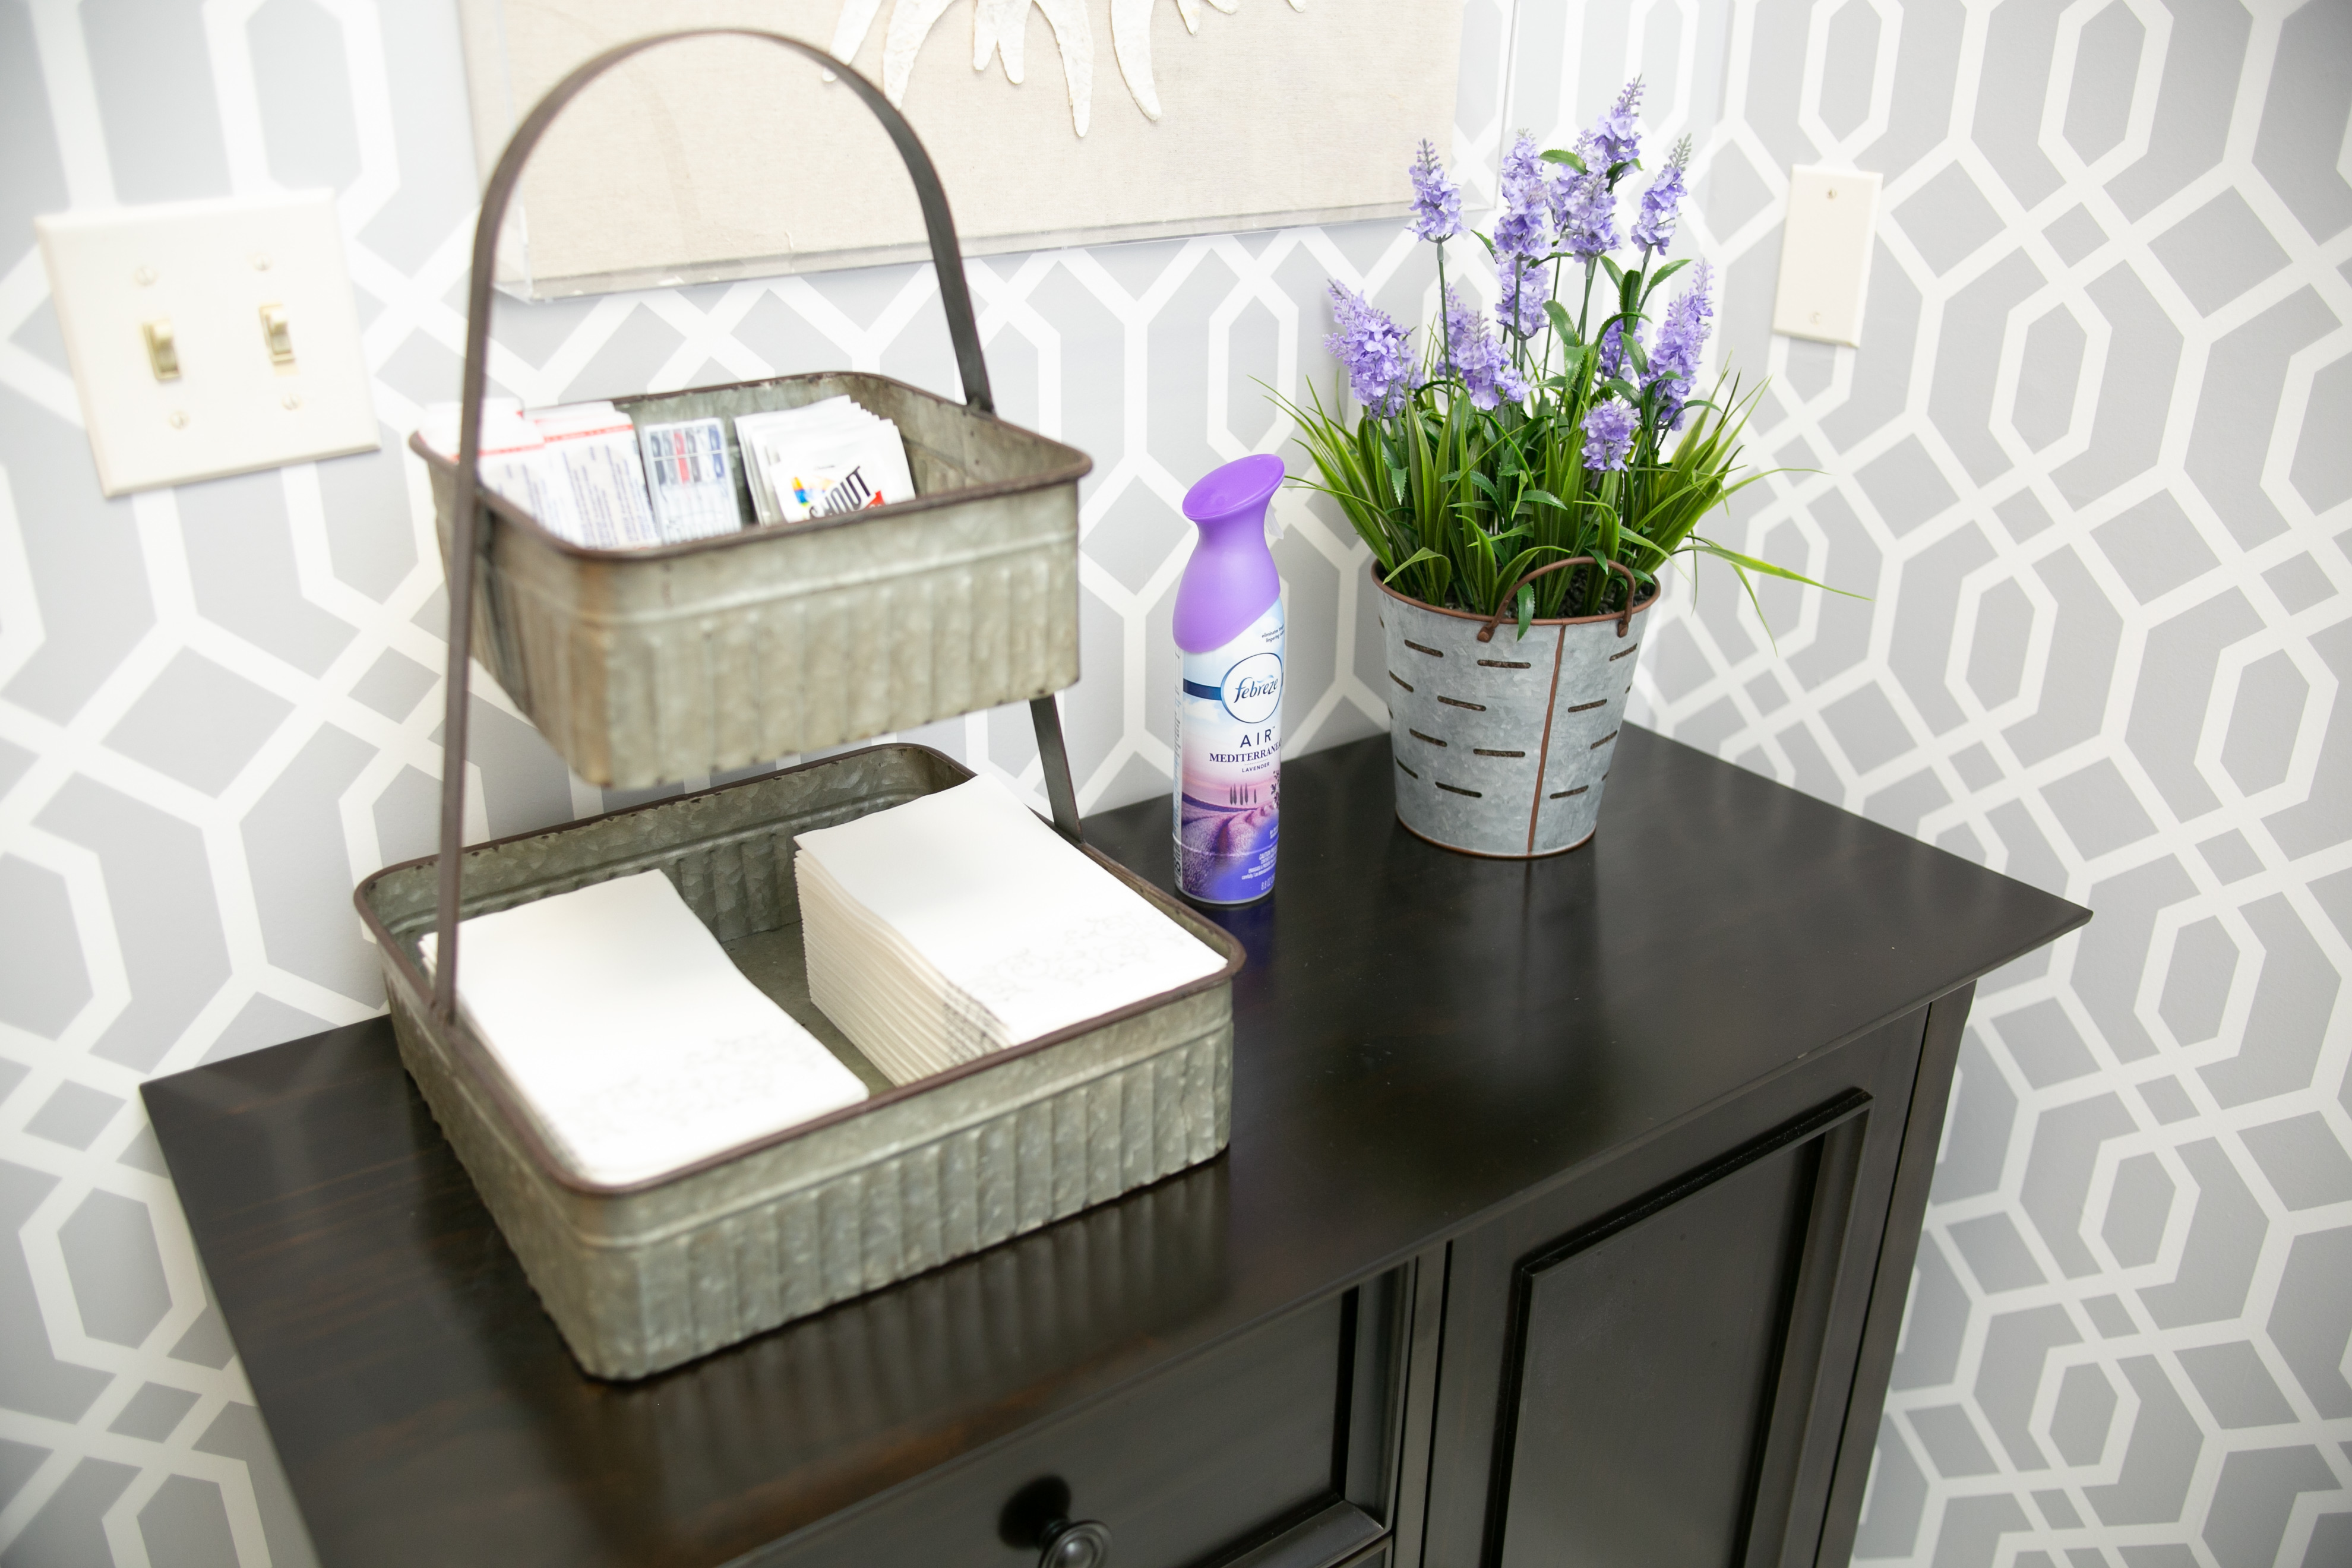 Side Table with Paper Towels | Our Office | Good Life Center | Therapy Services in Cranford, NJ | 07016